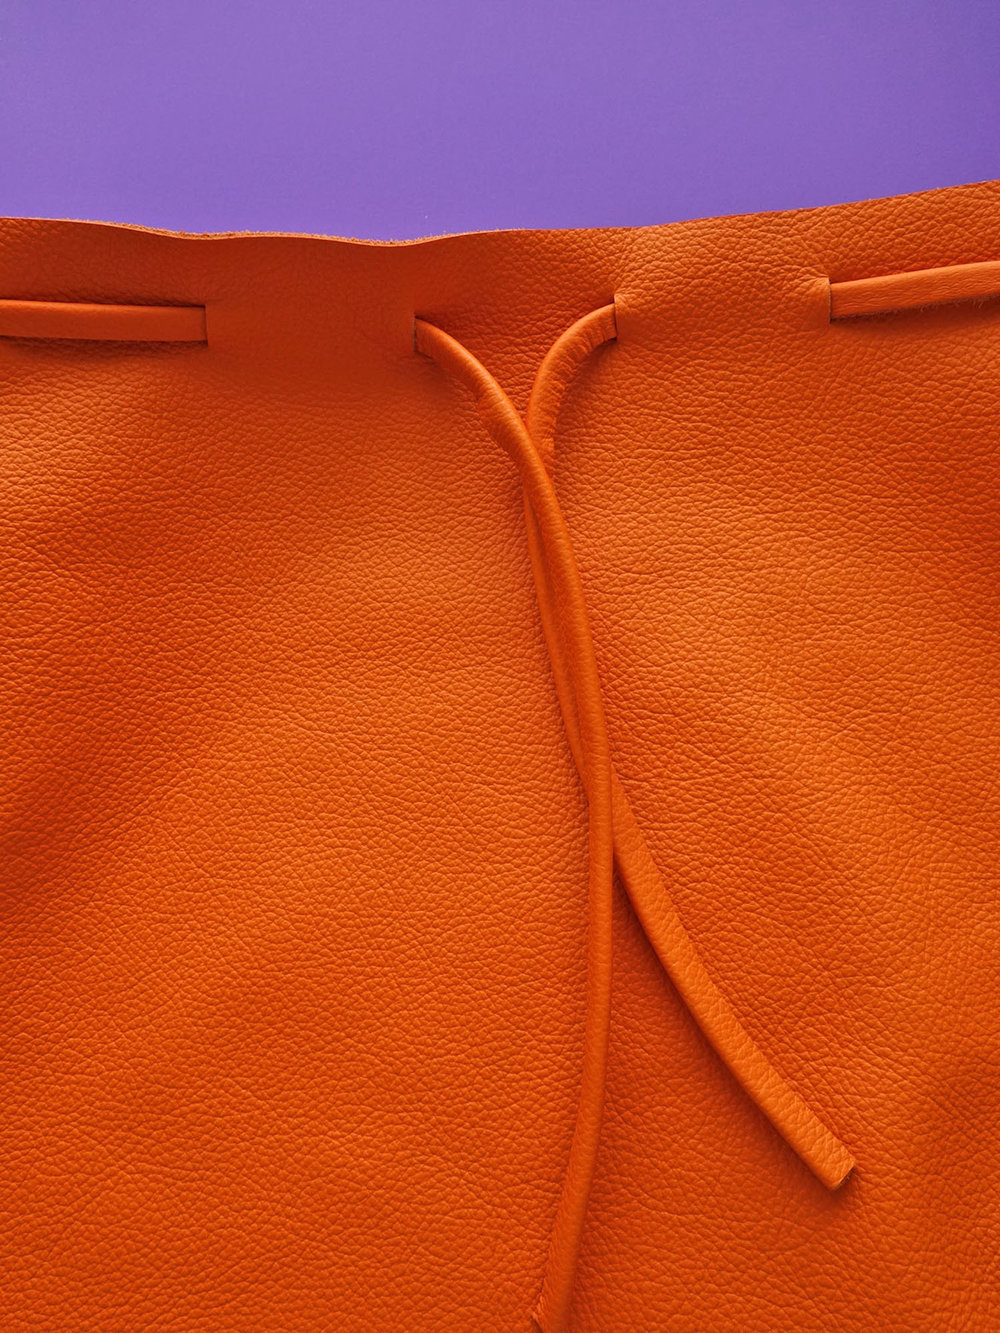 Liodebruin_Leather_Drawstringbags_03.jpg